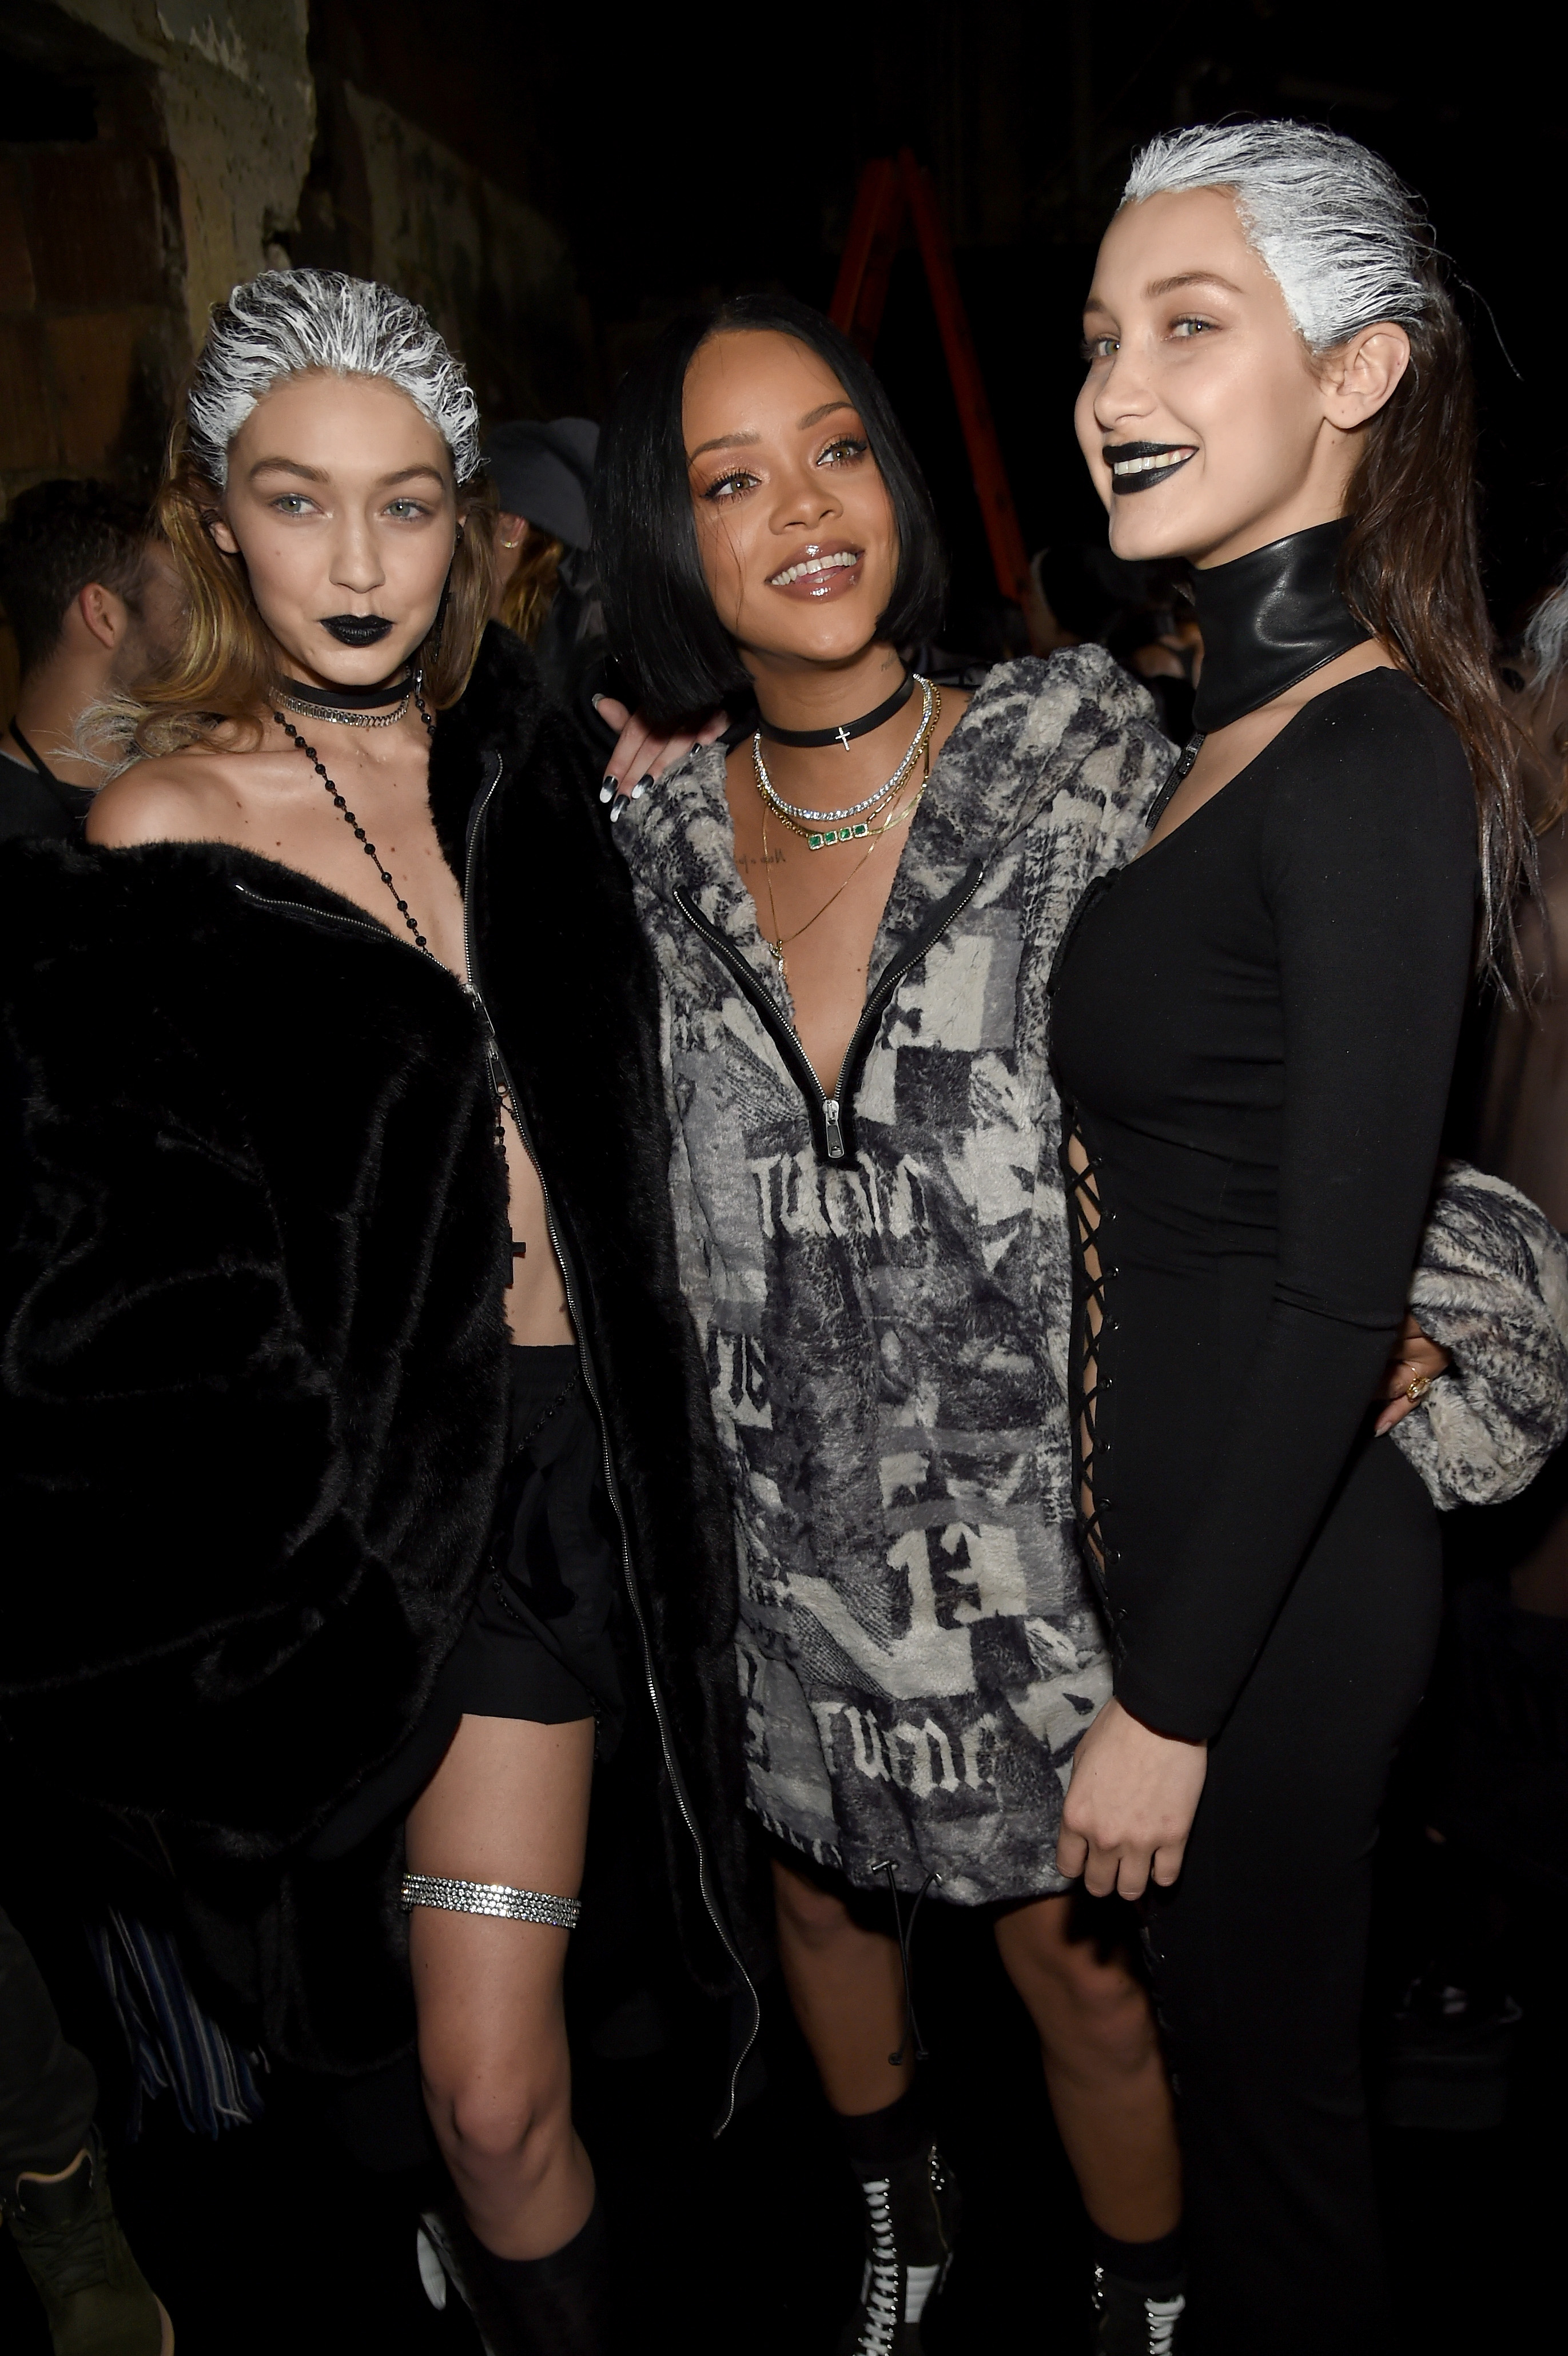 reputable site f6ff1 85f00 Rihanna Put on a Real Deal Fashion Show For Puma - Racked